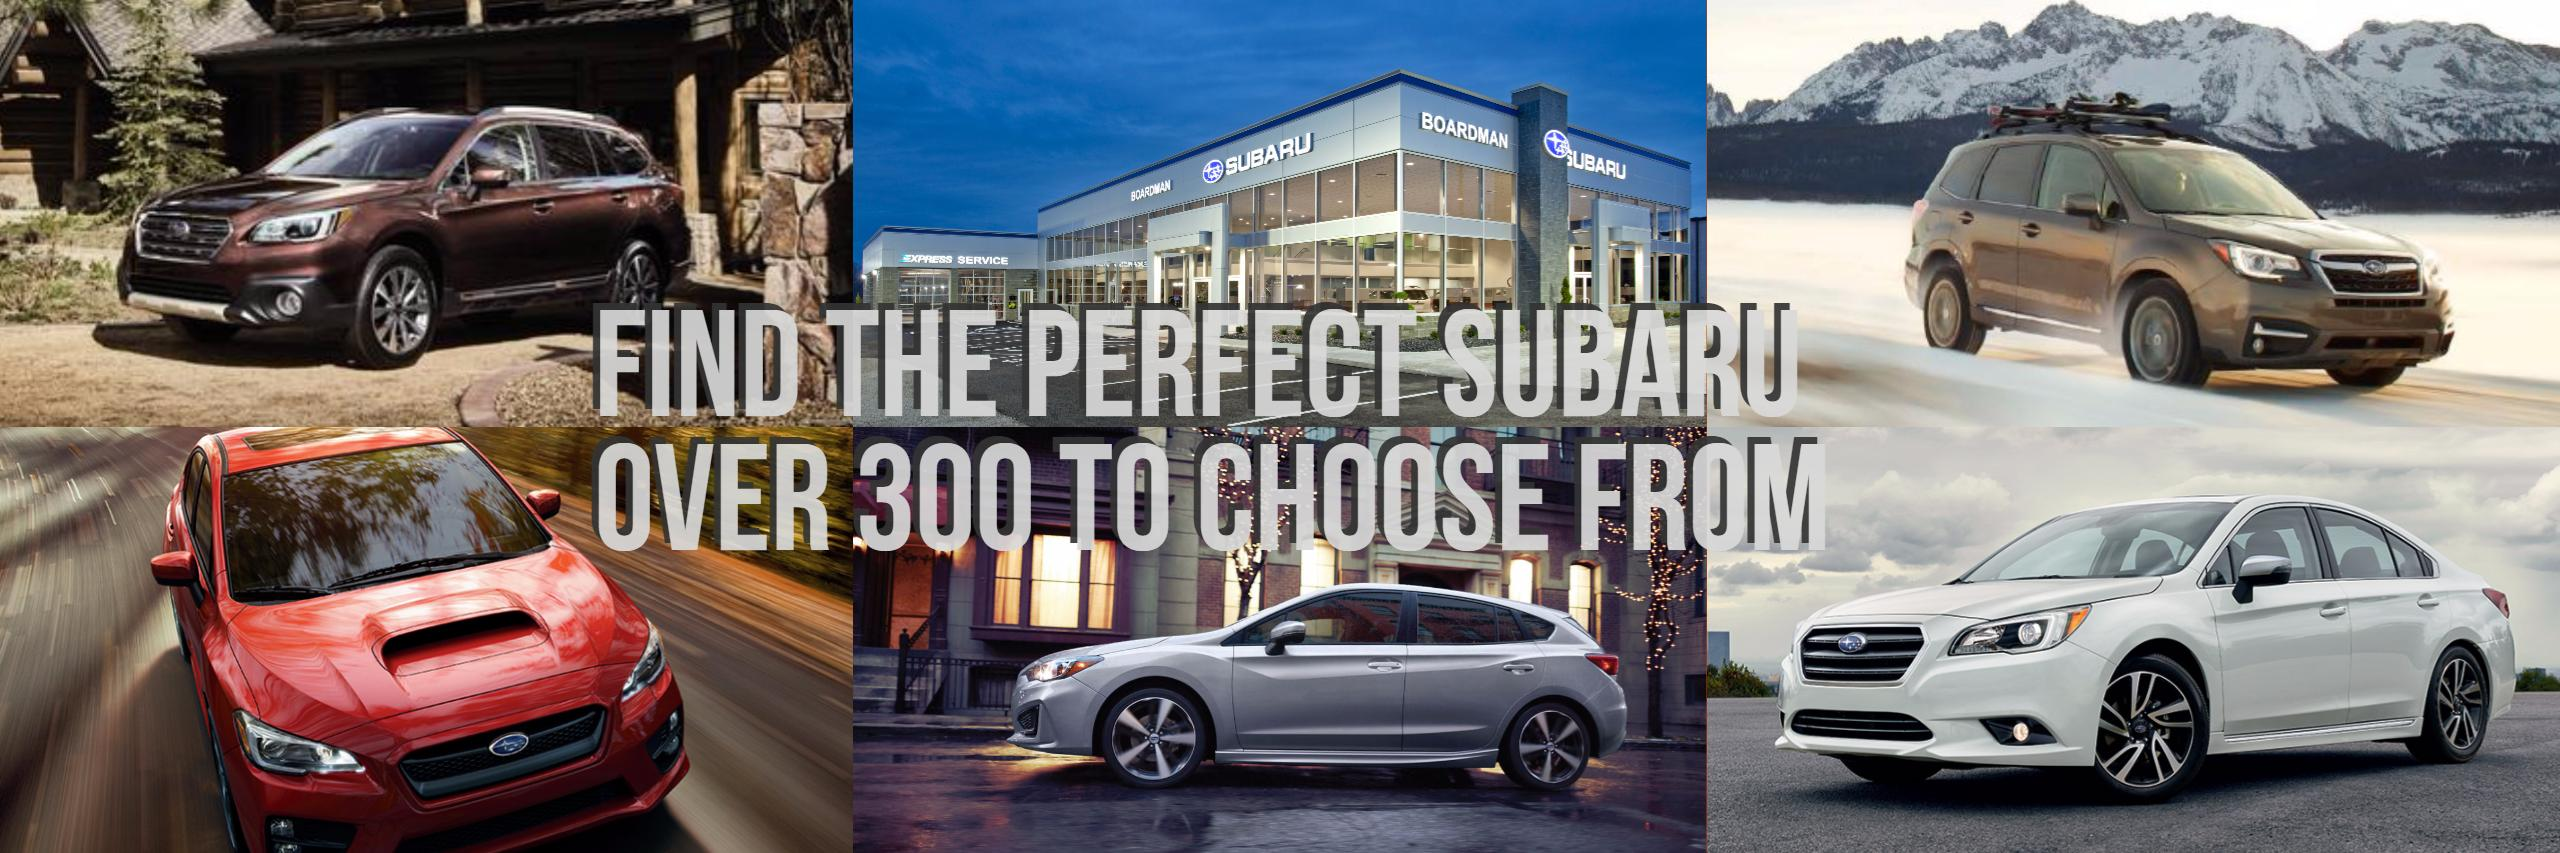 Boardman subaru new used subaru dealership boardman oh serving columbiana warren youngstown